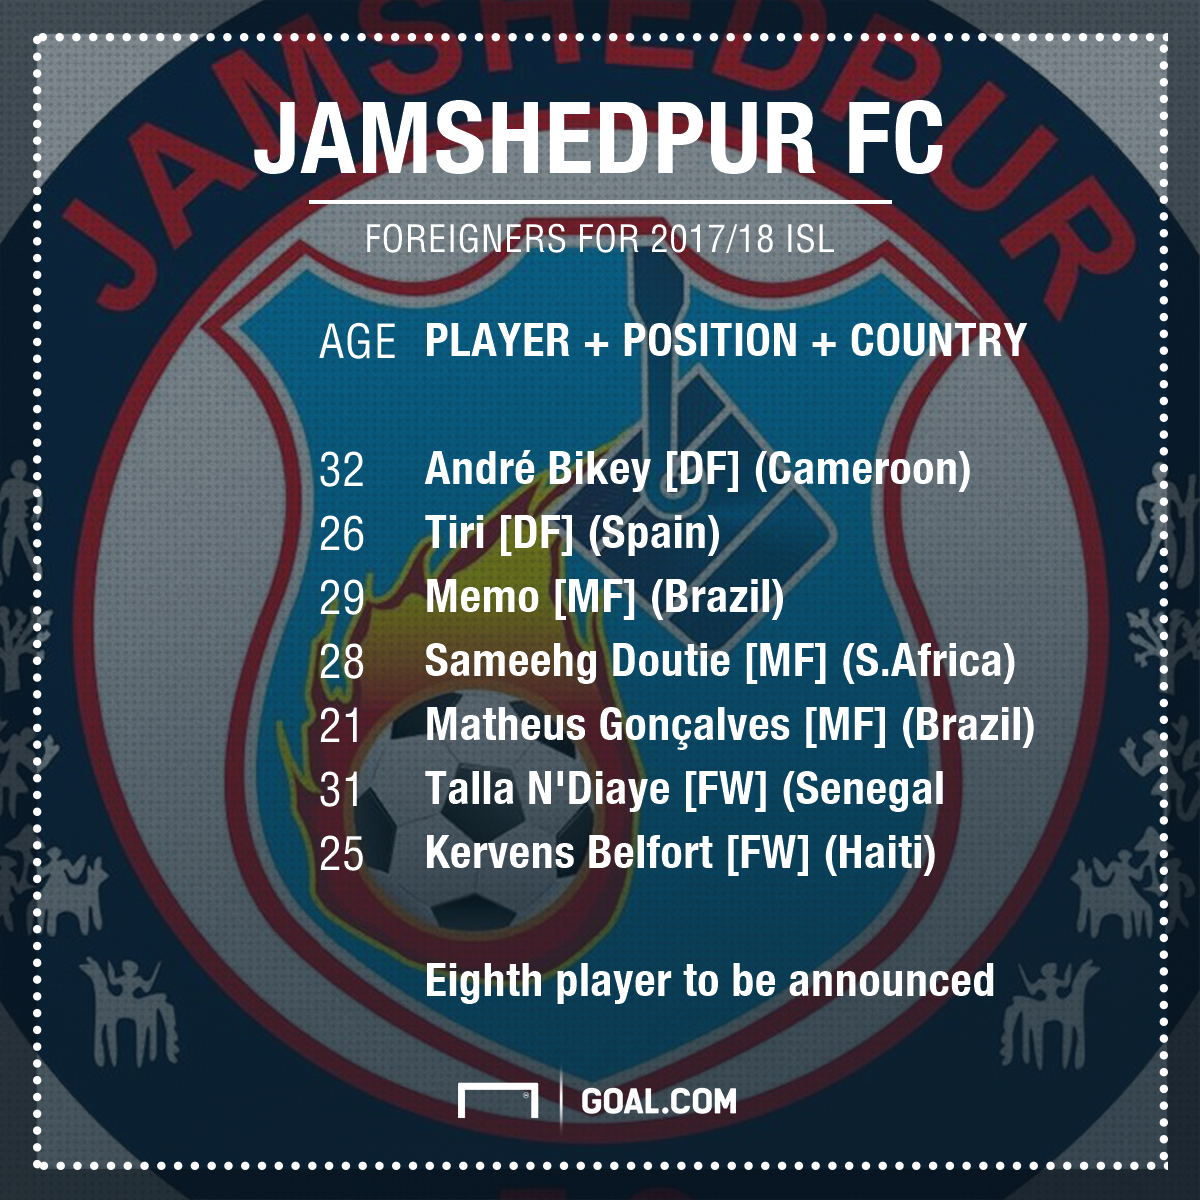 Jamshedpur FC Foreigners